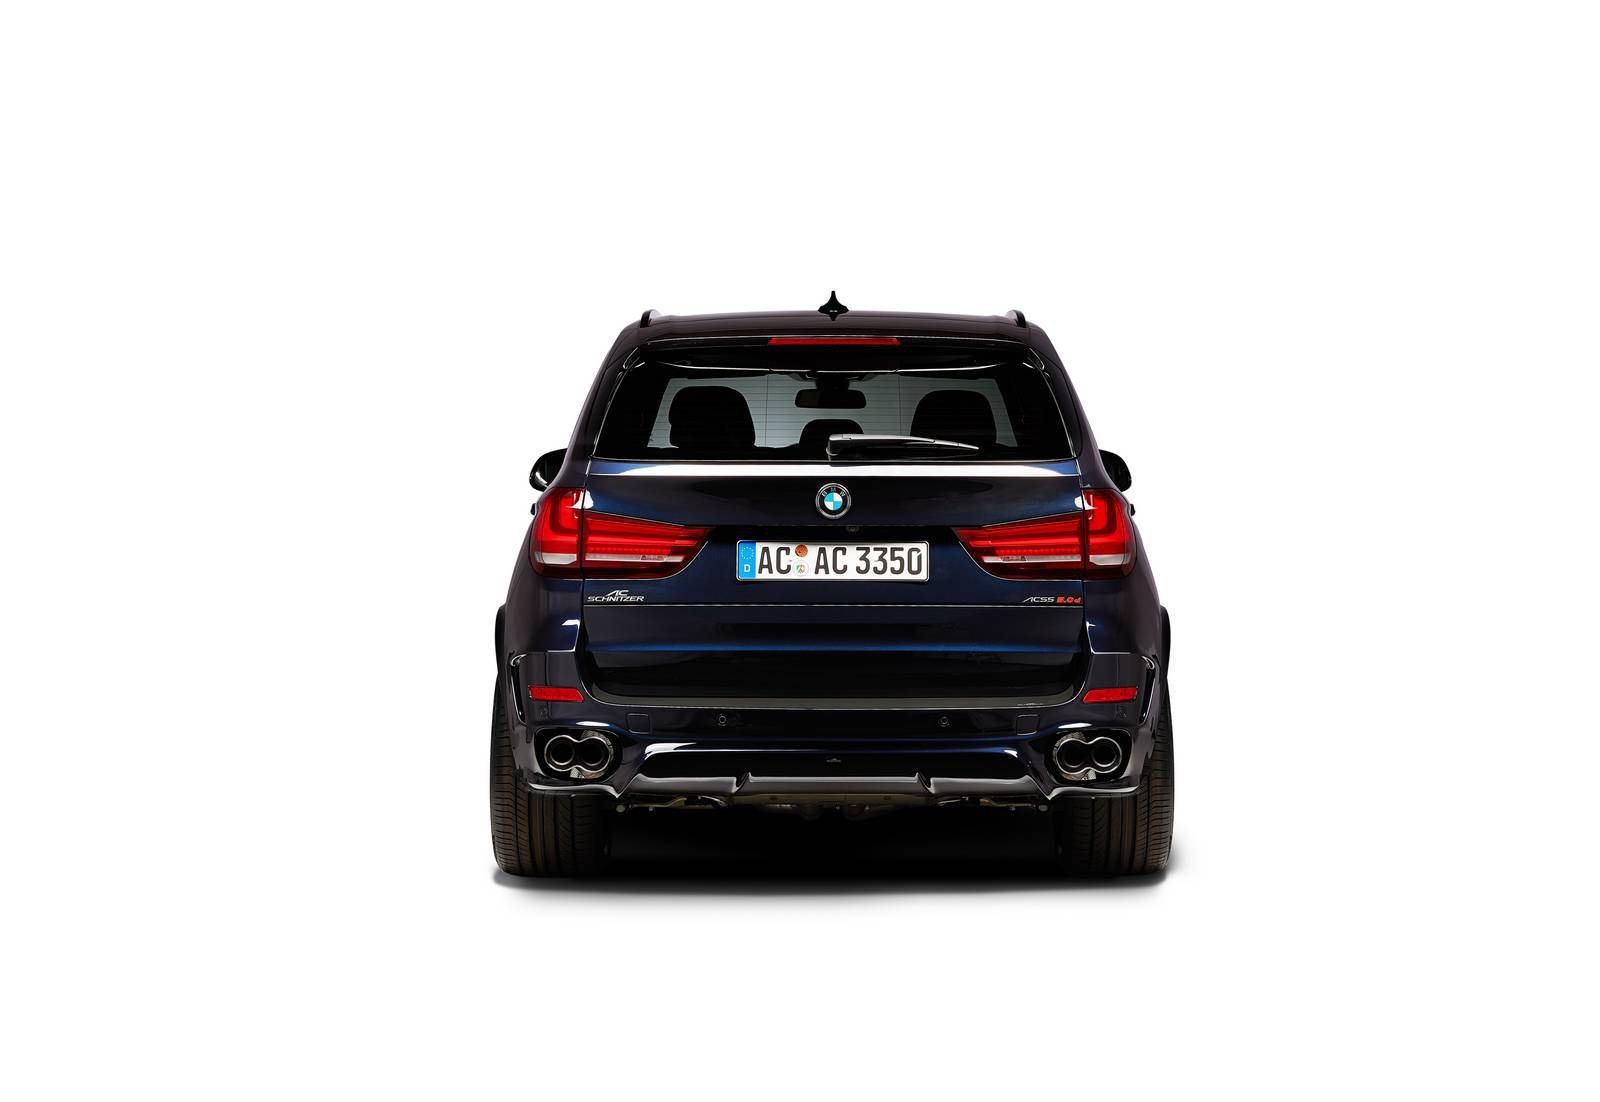 http://www.autoblog.gr/wp-content/gallery/bmw-x5-m50d-by-ac-schnitzer/bmw-x5-m50d-by-ac-schnitzer-5.jpg